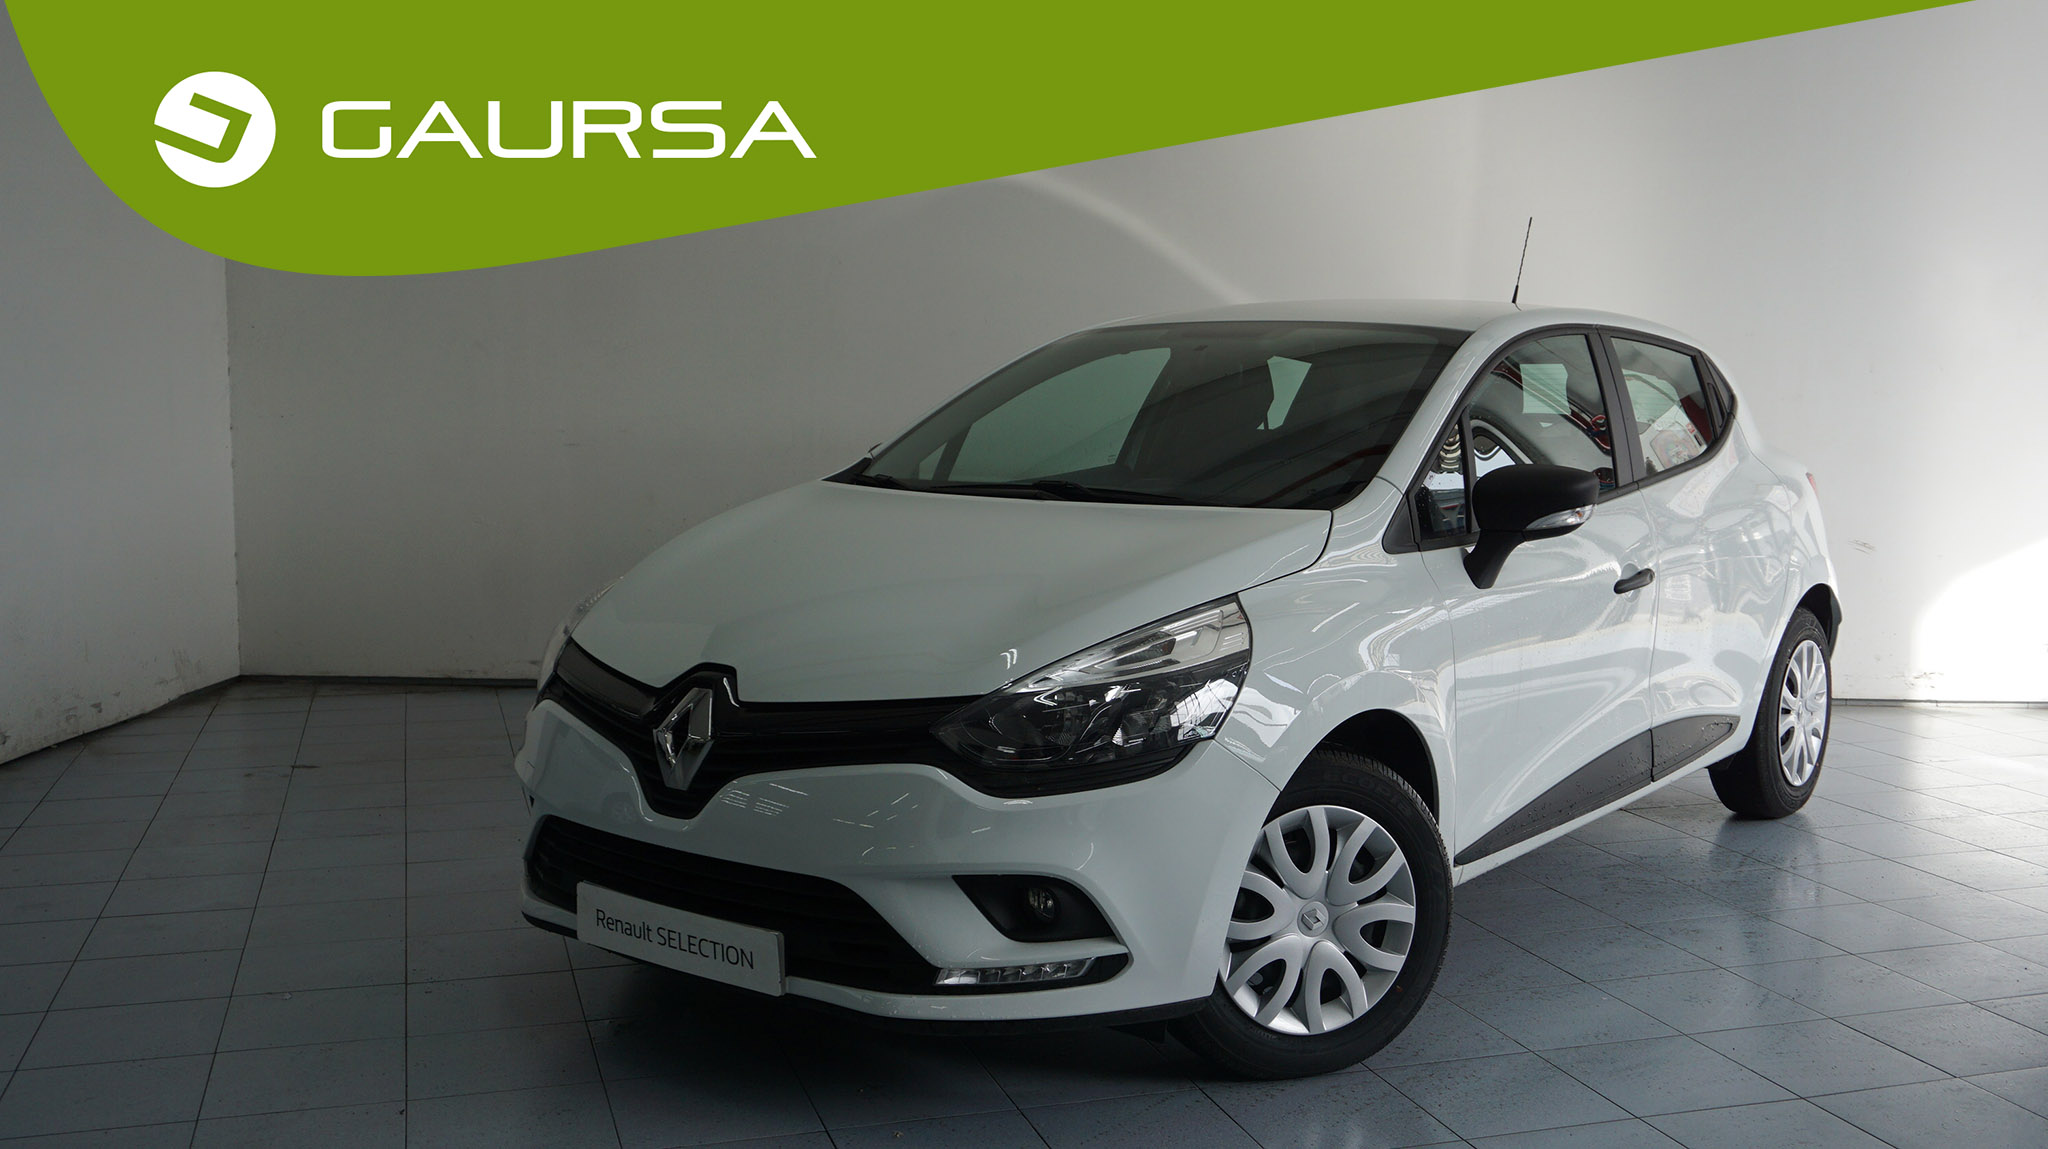 RENAULT CLIO 0.9 TCE BUSINESS 55KW - 18 76 5P